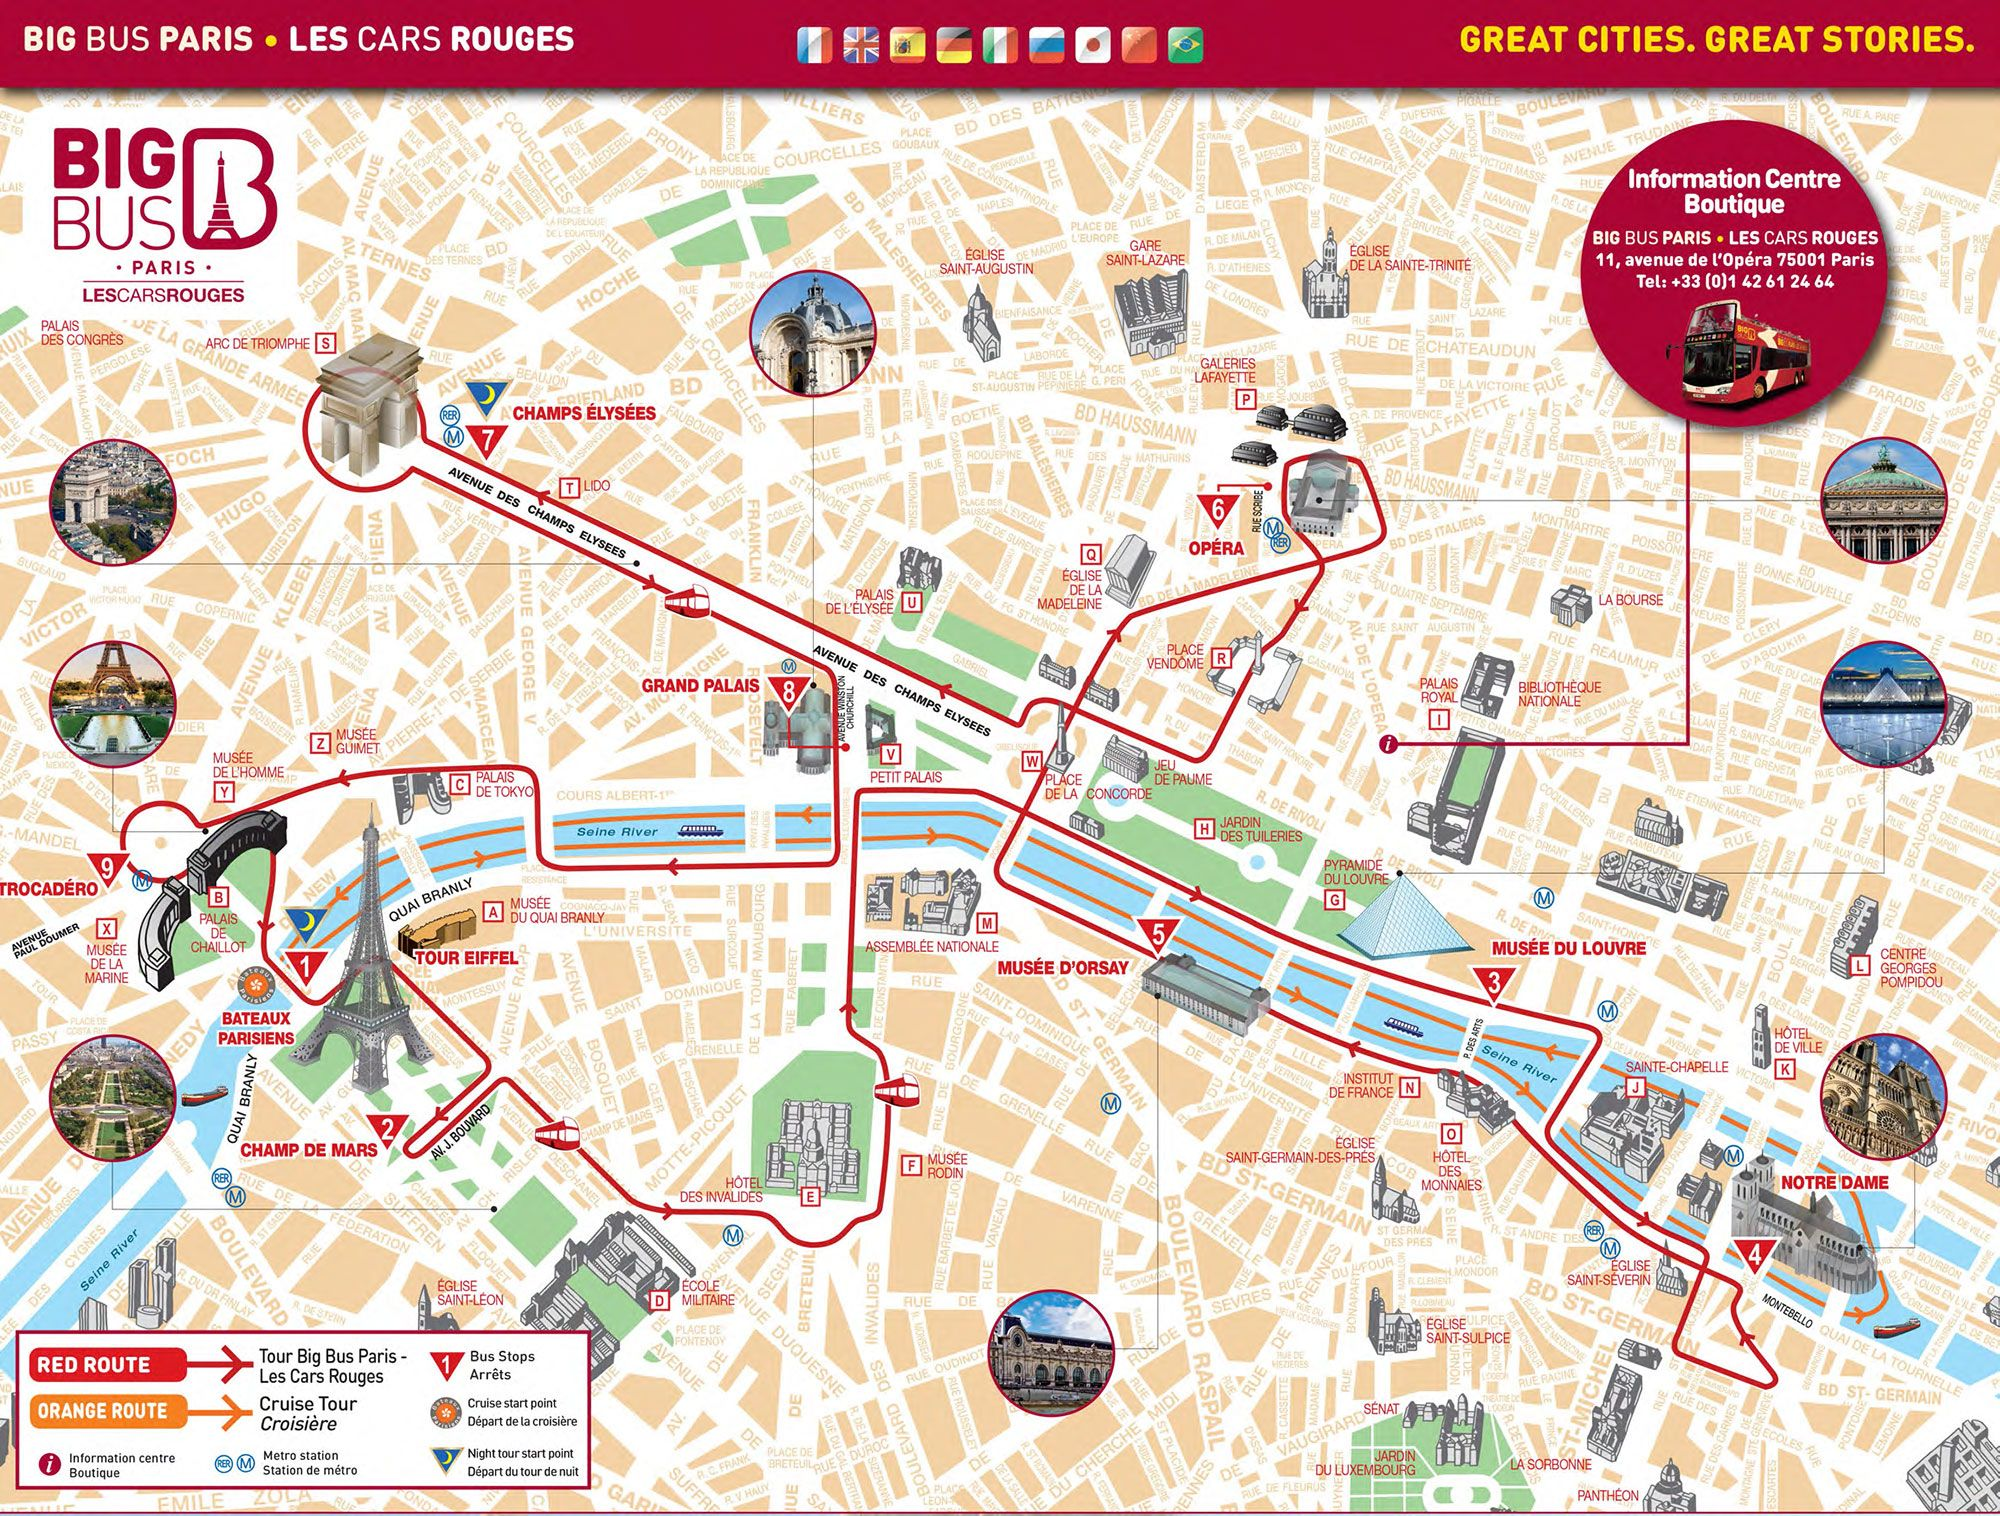 Map of Paris hop on hop off bus tour with Big Bus / Les Cars